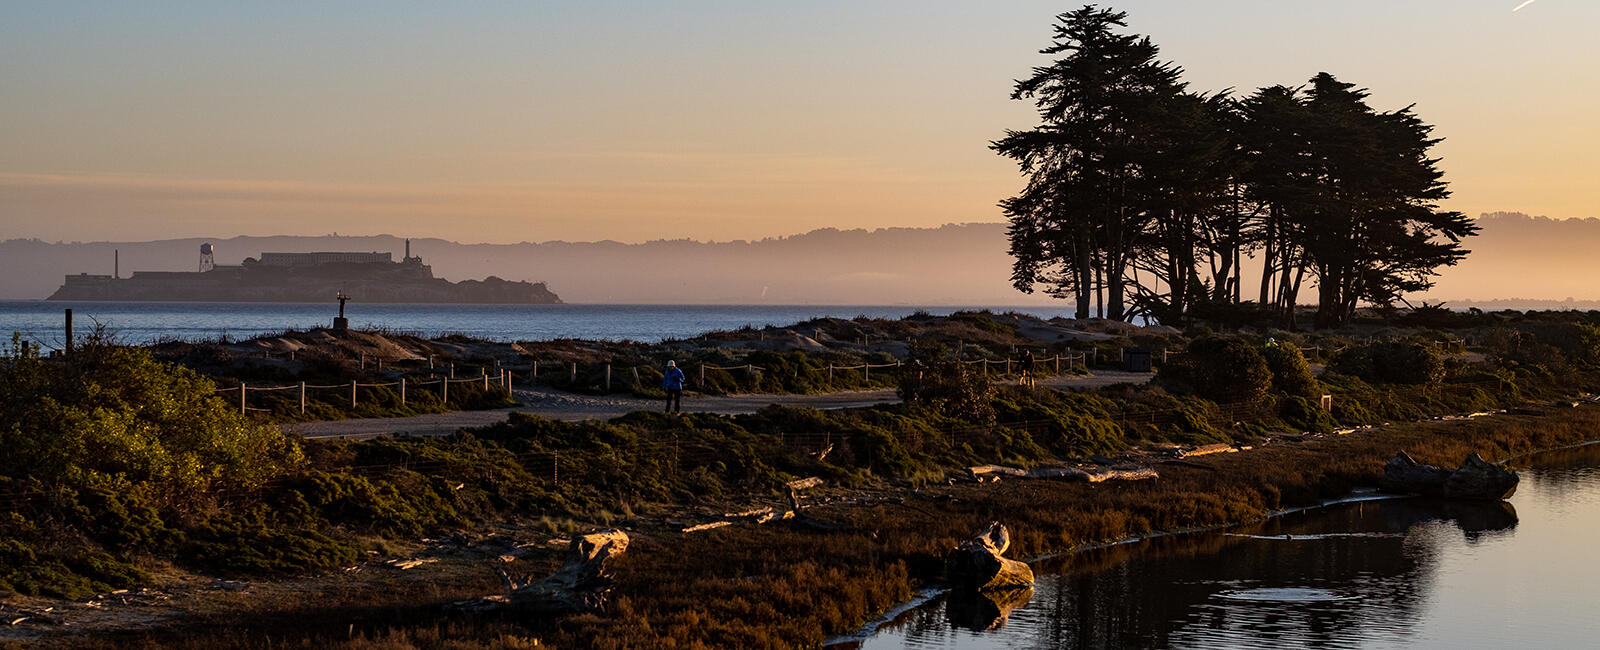 Crissy Field and Alcatraz seen at dawn.